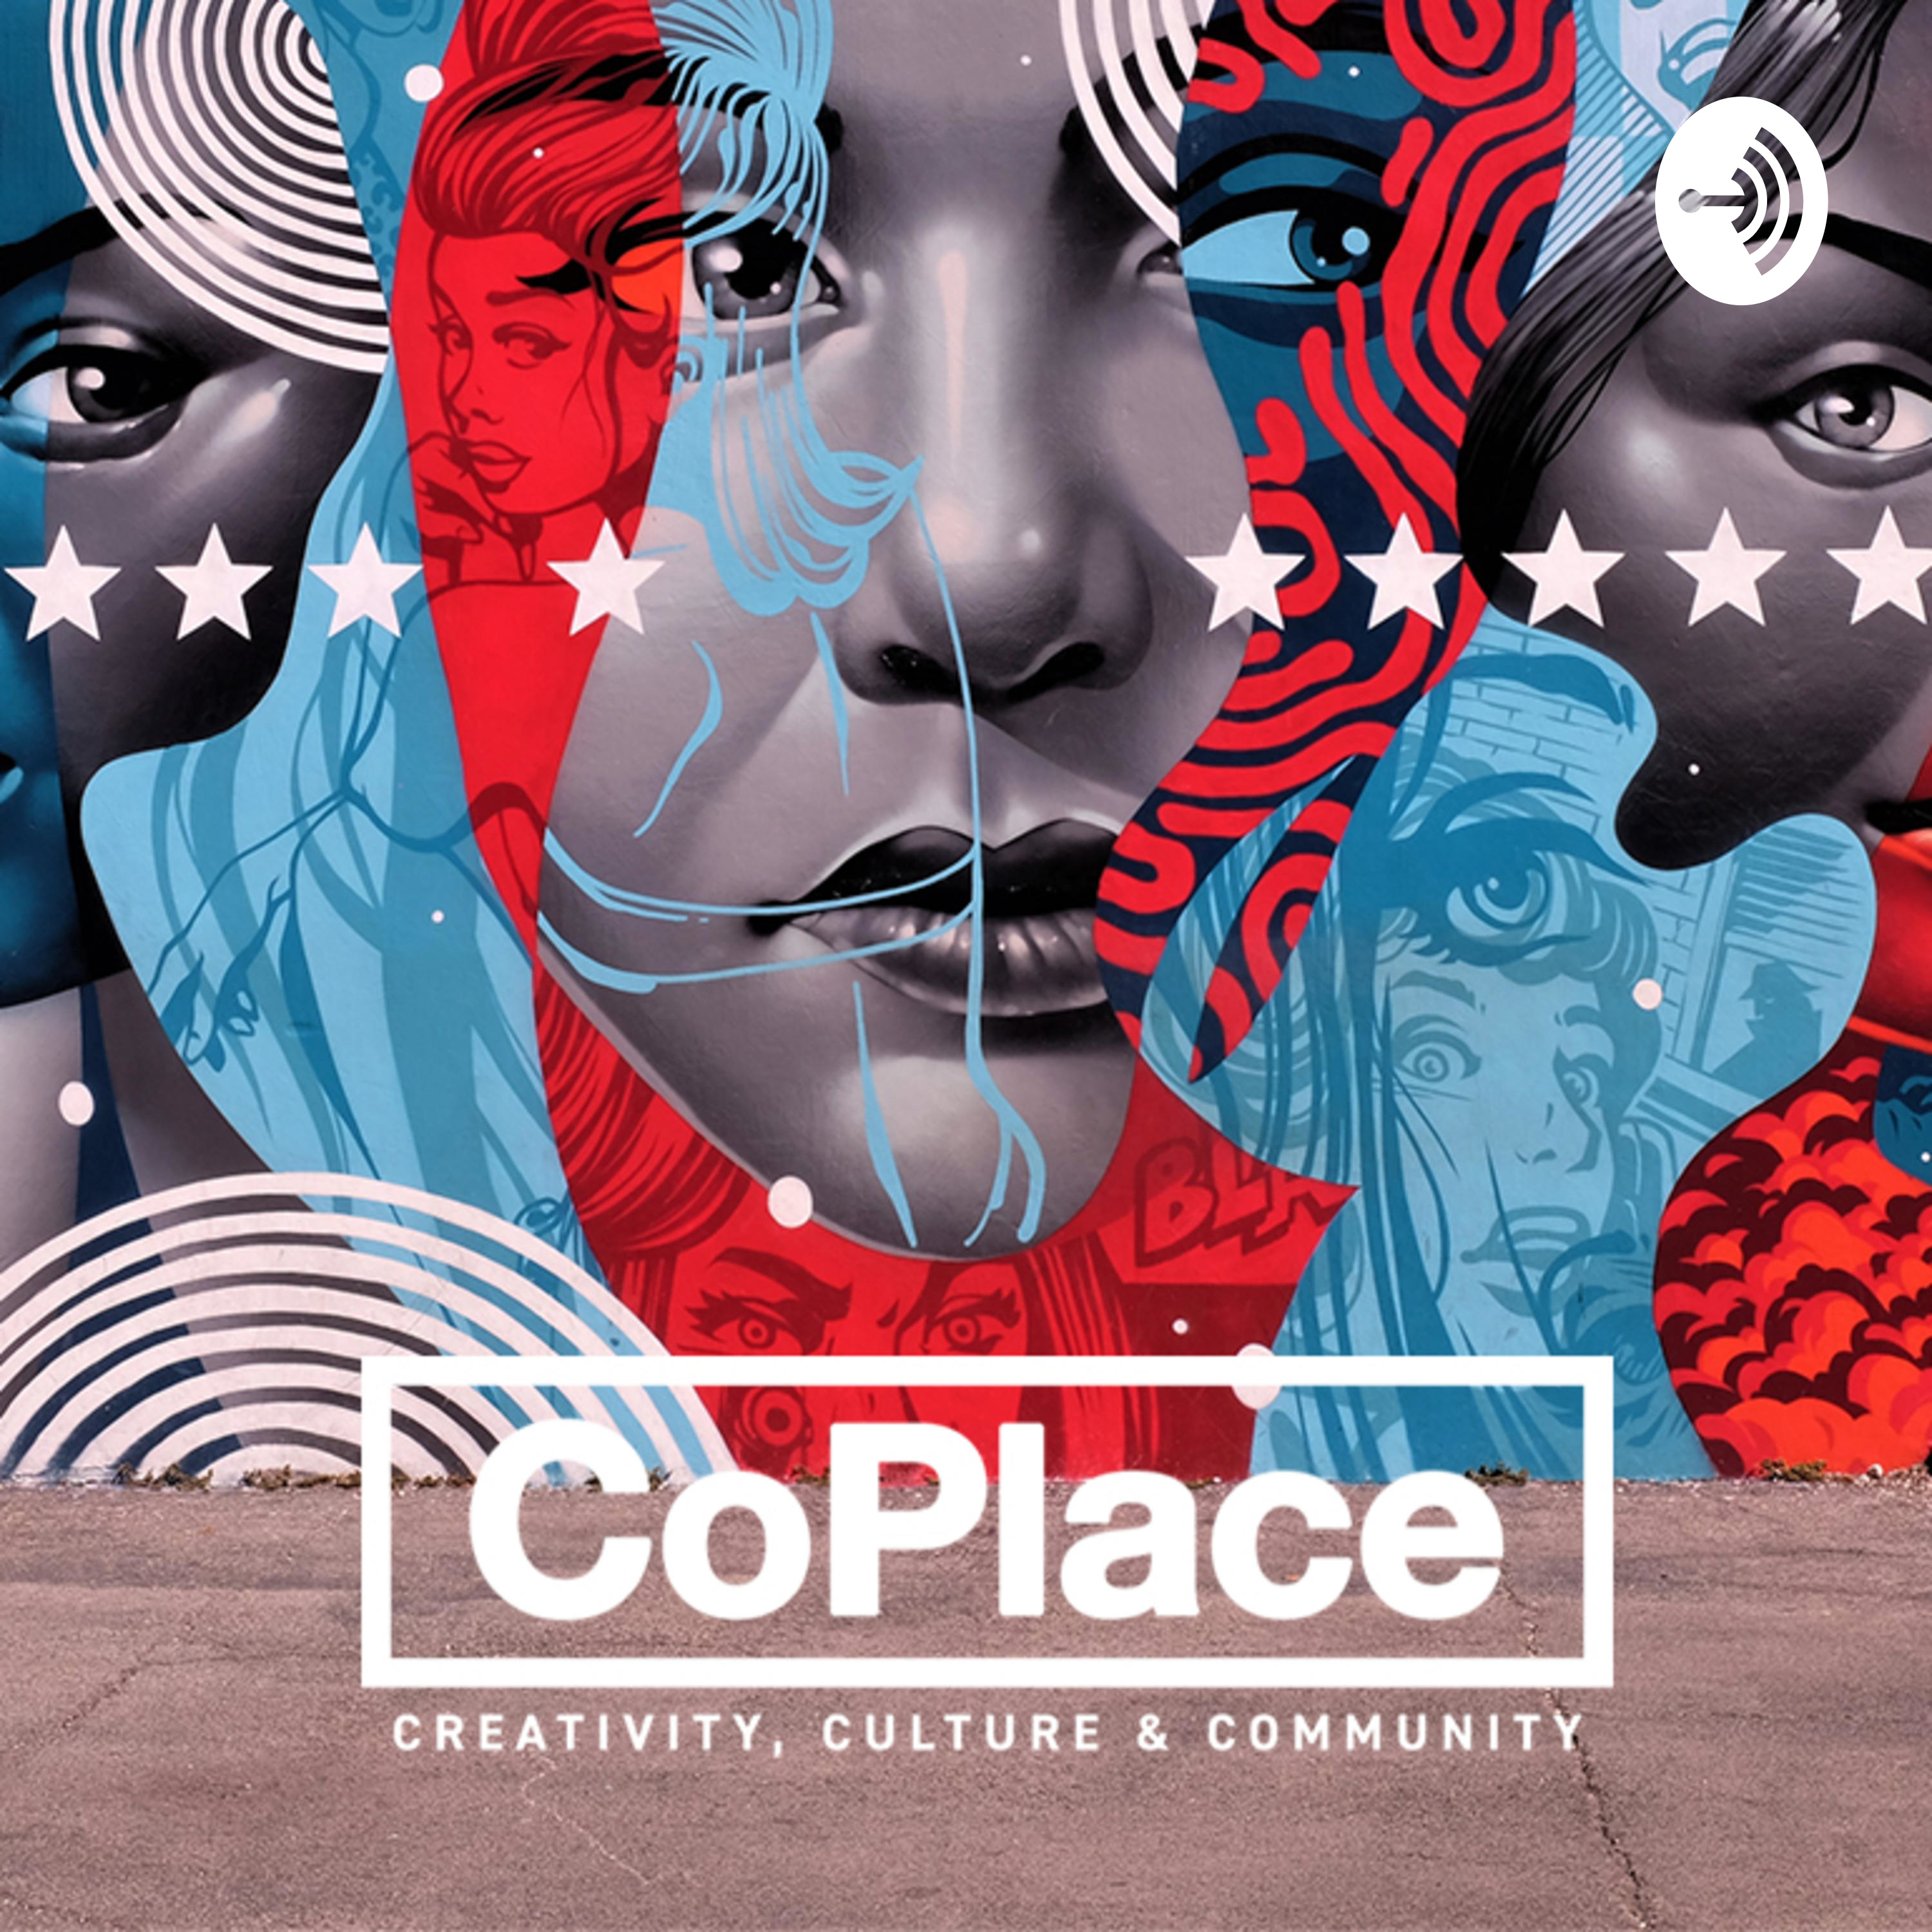 Sasha Cofounder of Coplace talks about his history, his views on community and entrepreneurship.